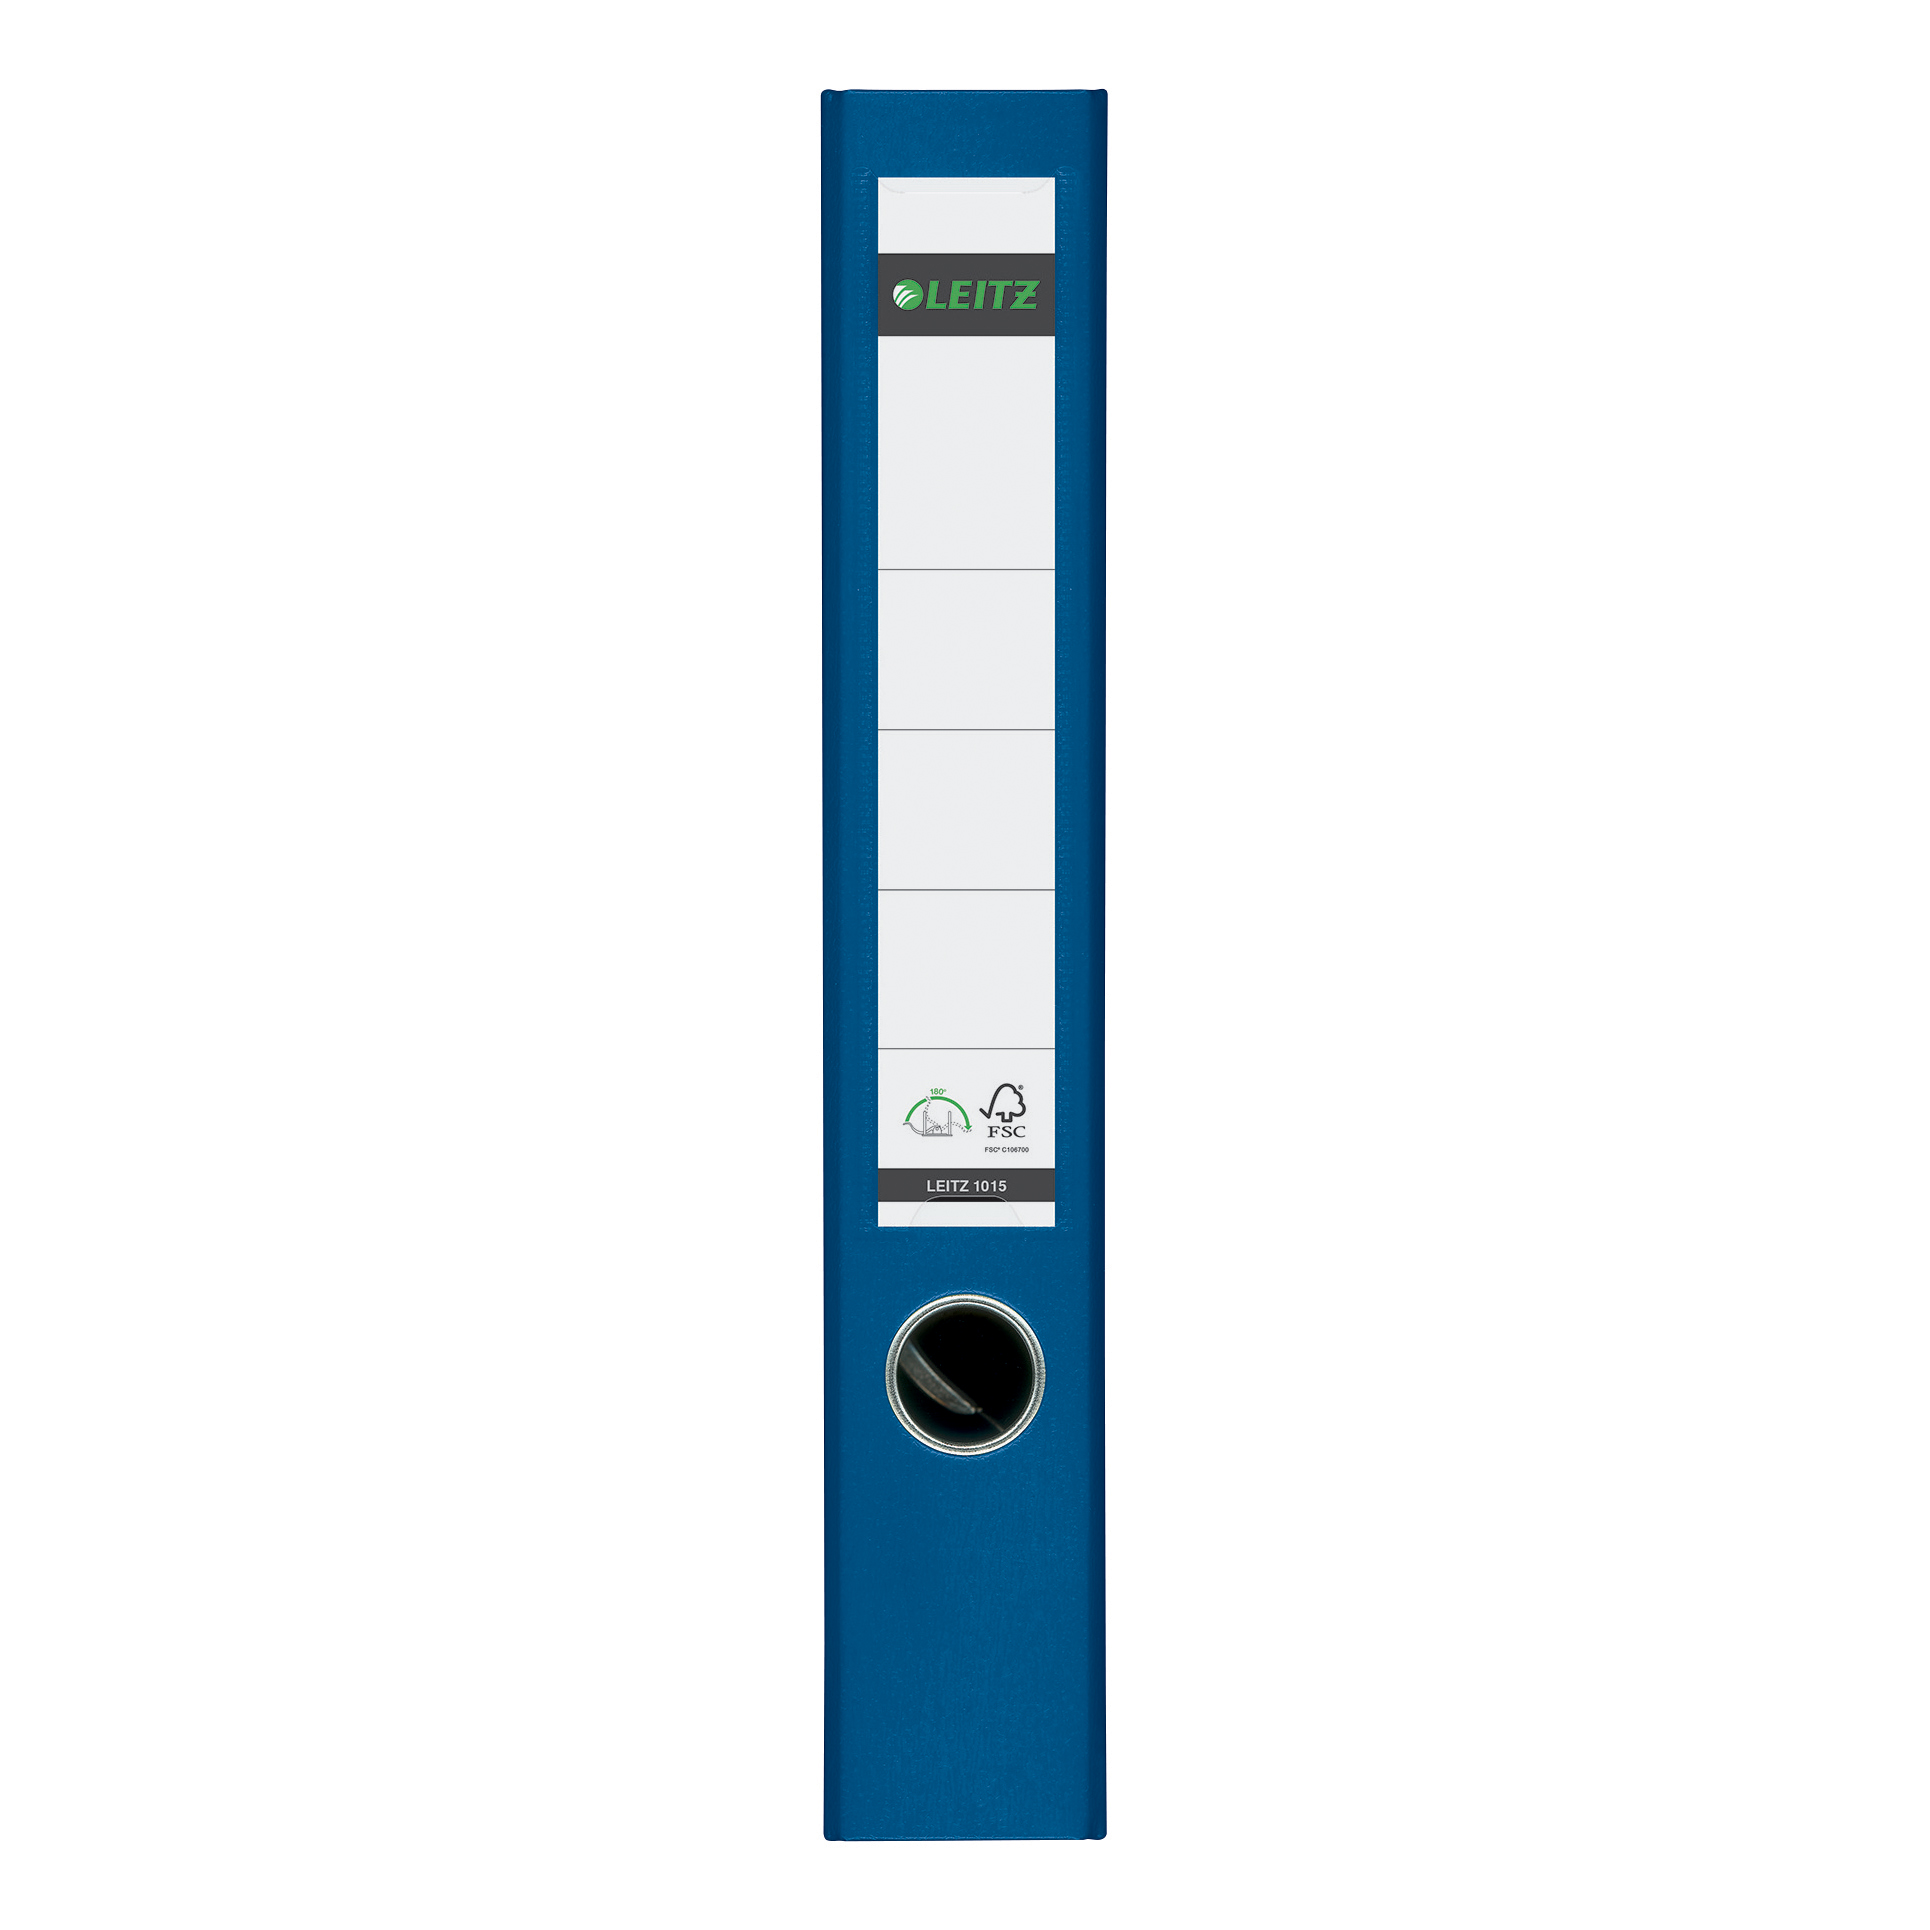 Leitz Mini Lever Arch File Plastic 50mm Spine A4 Blue Ref 10151035 [Pack 10]